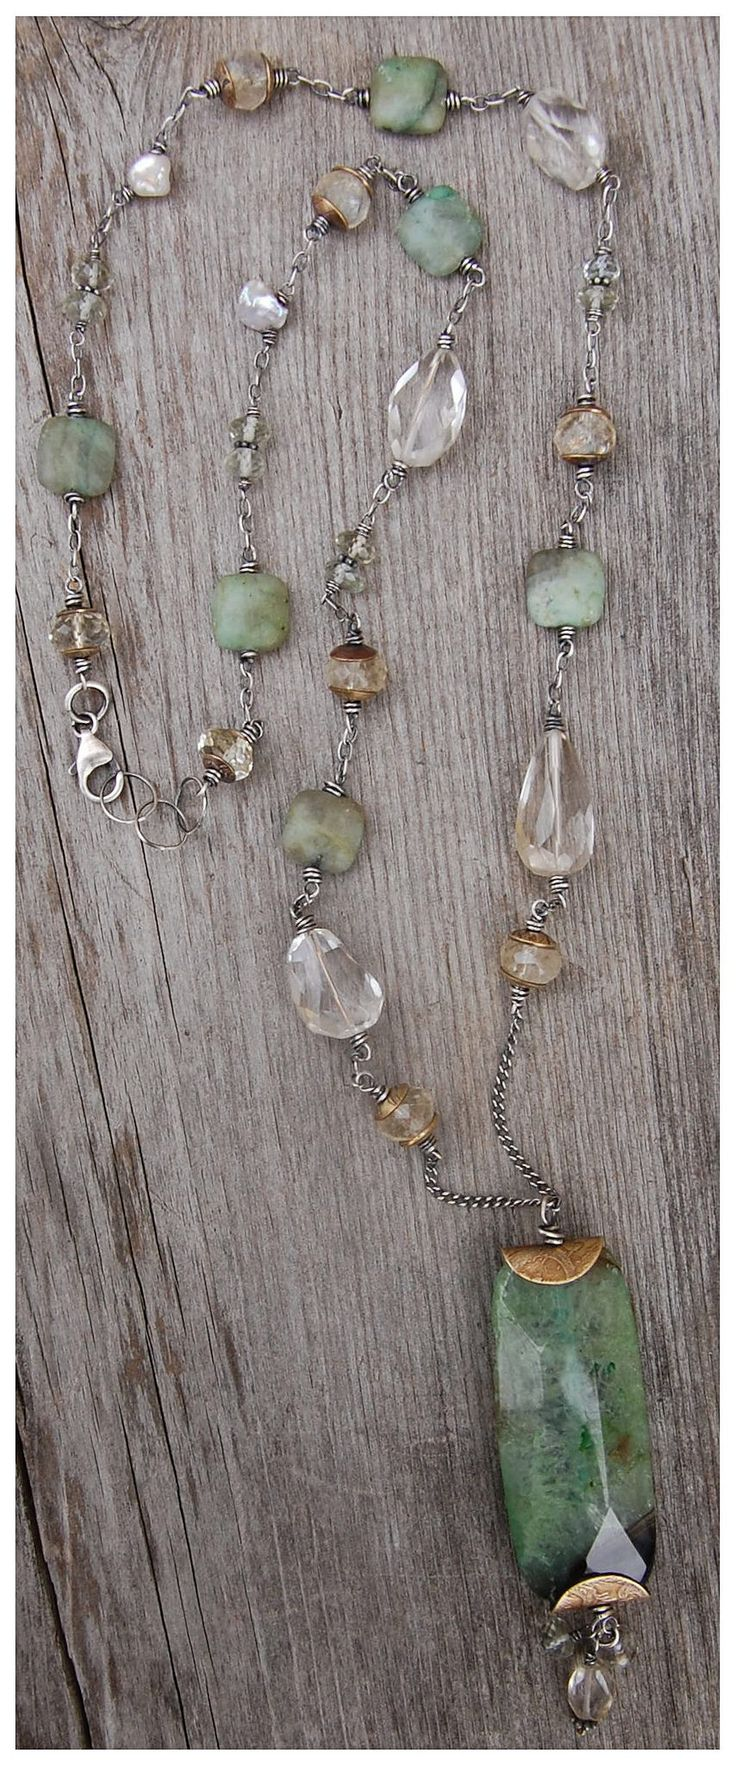 new necklace with large, faceted fluorite bead as pendant....with wire wrapped citrine, quartz, small fluorite beads, prehnite, handmade beadcaps, sterling silver wire and chain